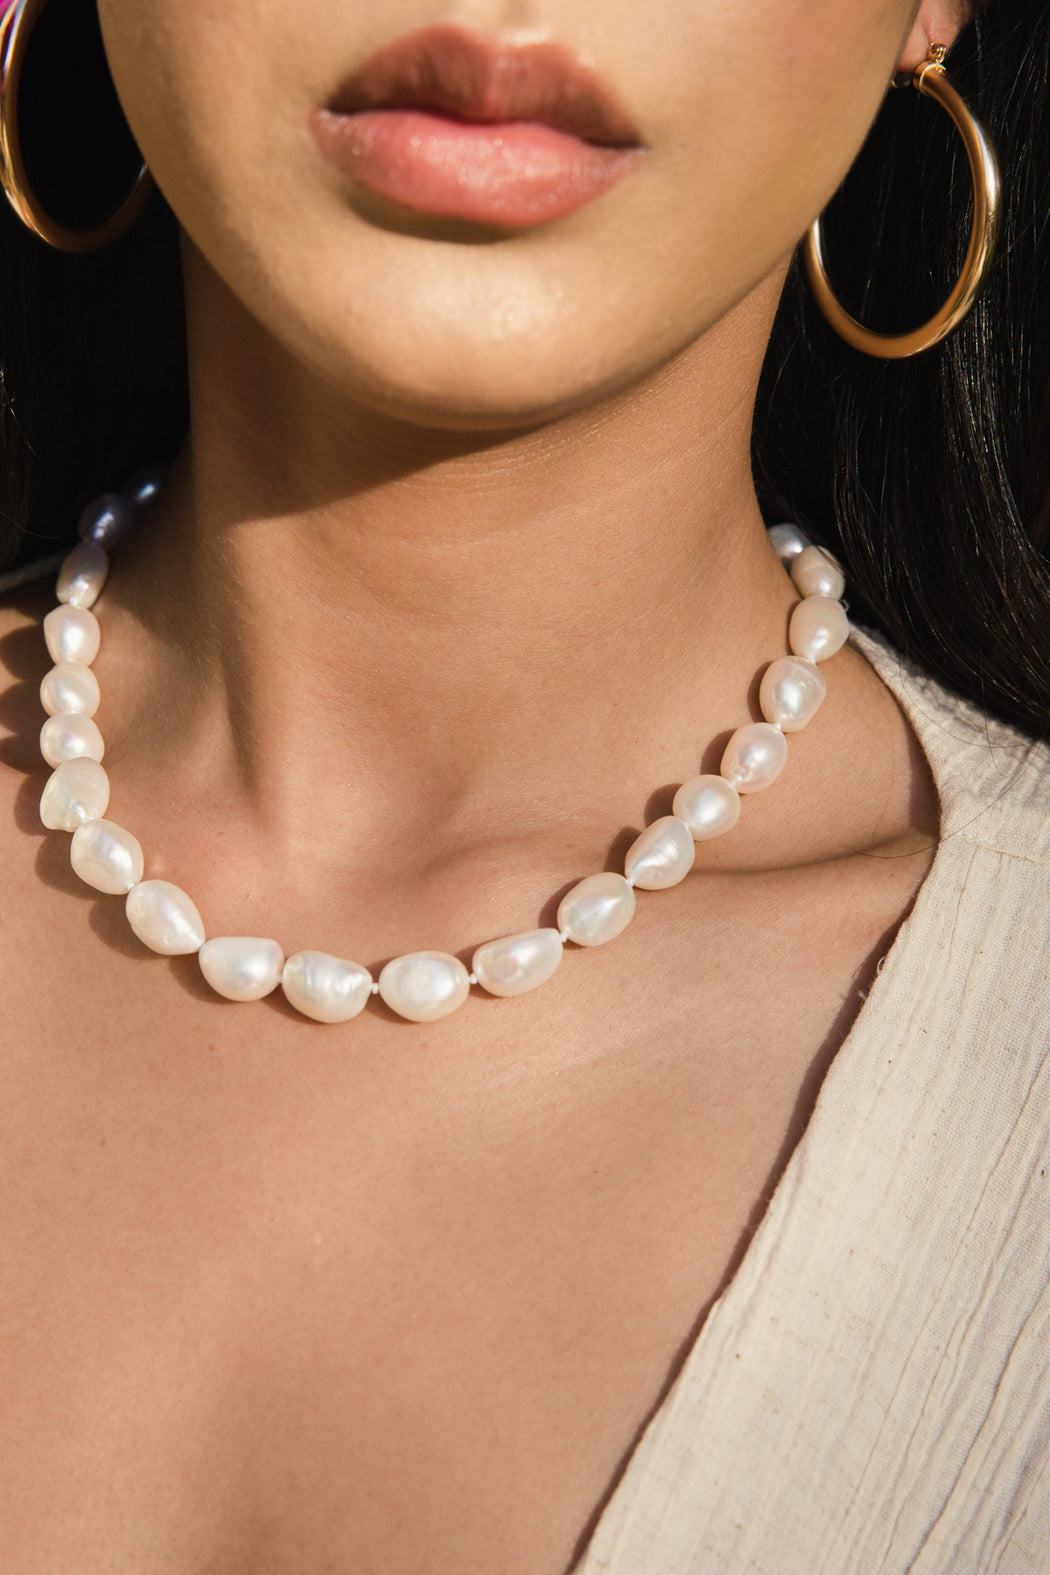 Mother of All Pearls Necklace